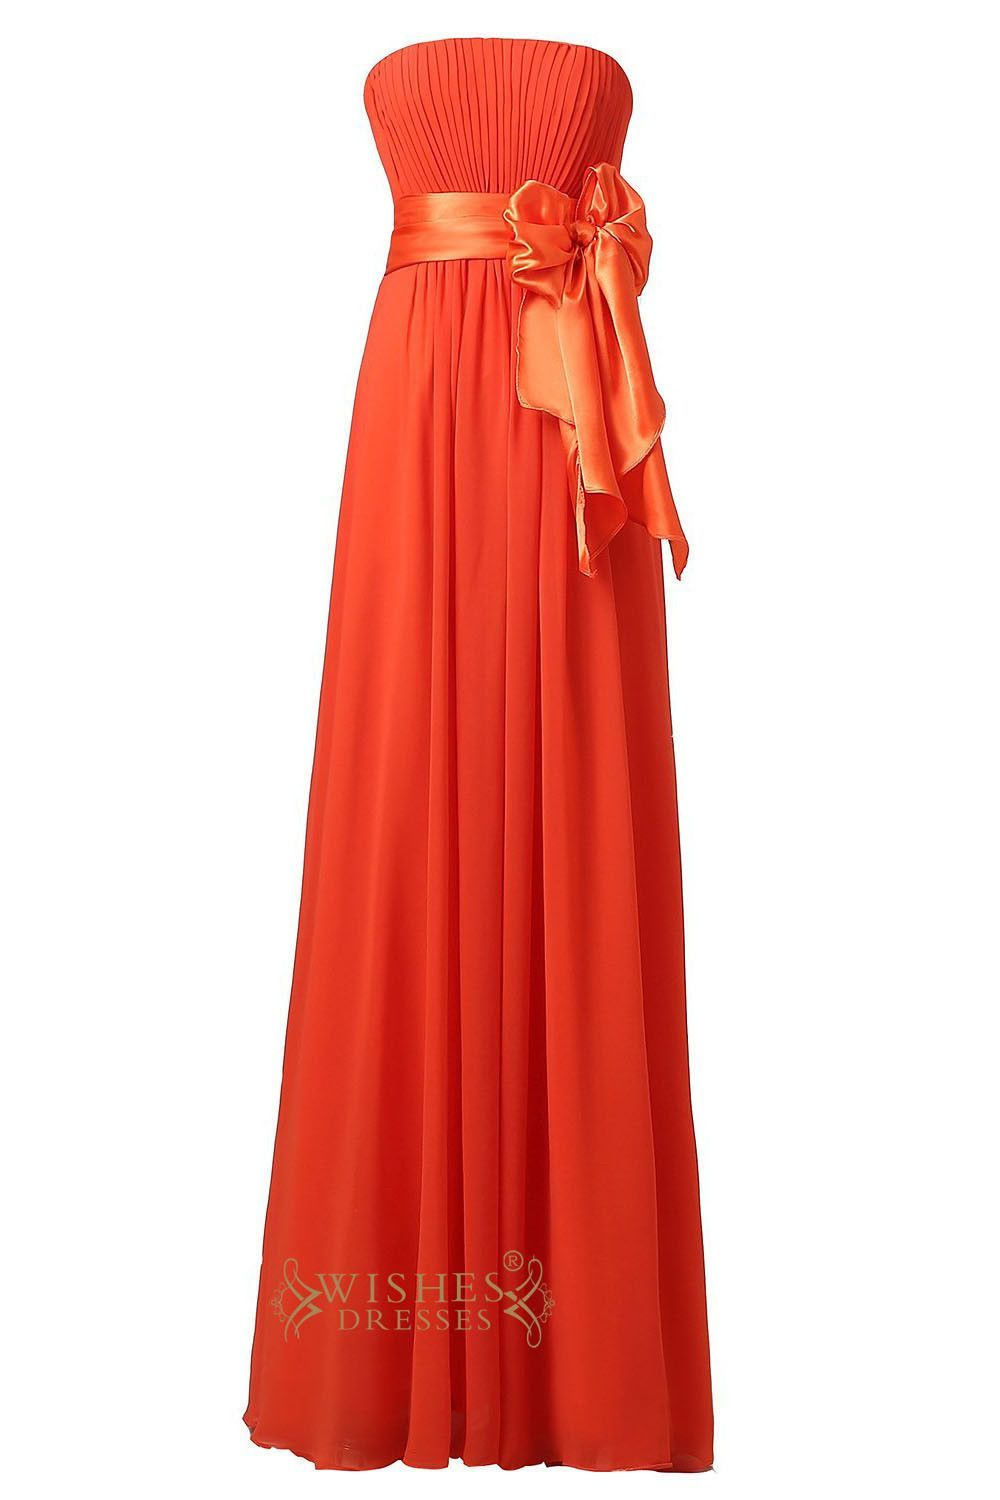 827df06914ab Cheap Orange Chiffon Strapless Sweetheart Floor Length Bridesmaid Dress For  Wedding Am22